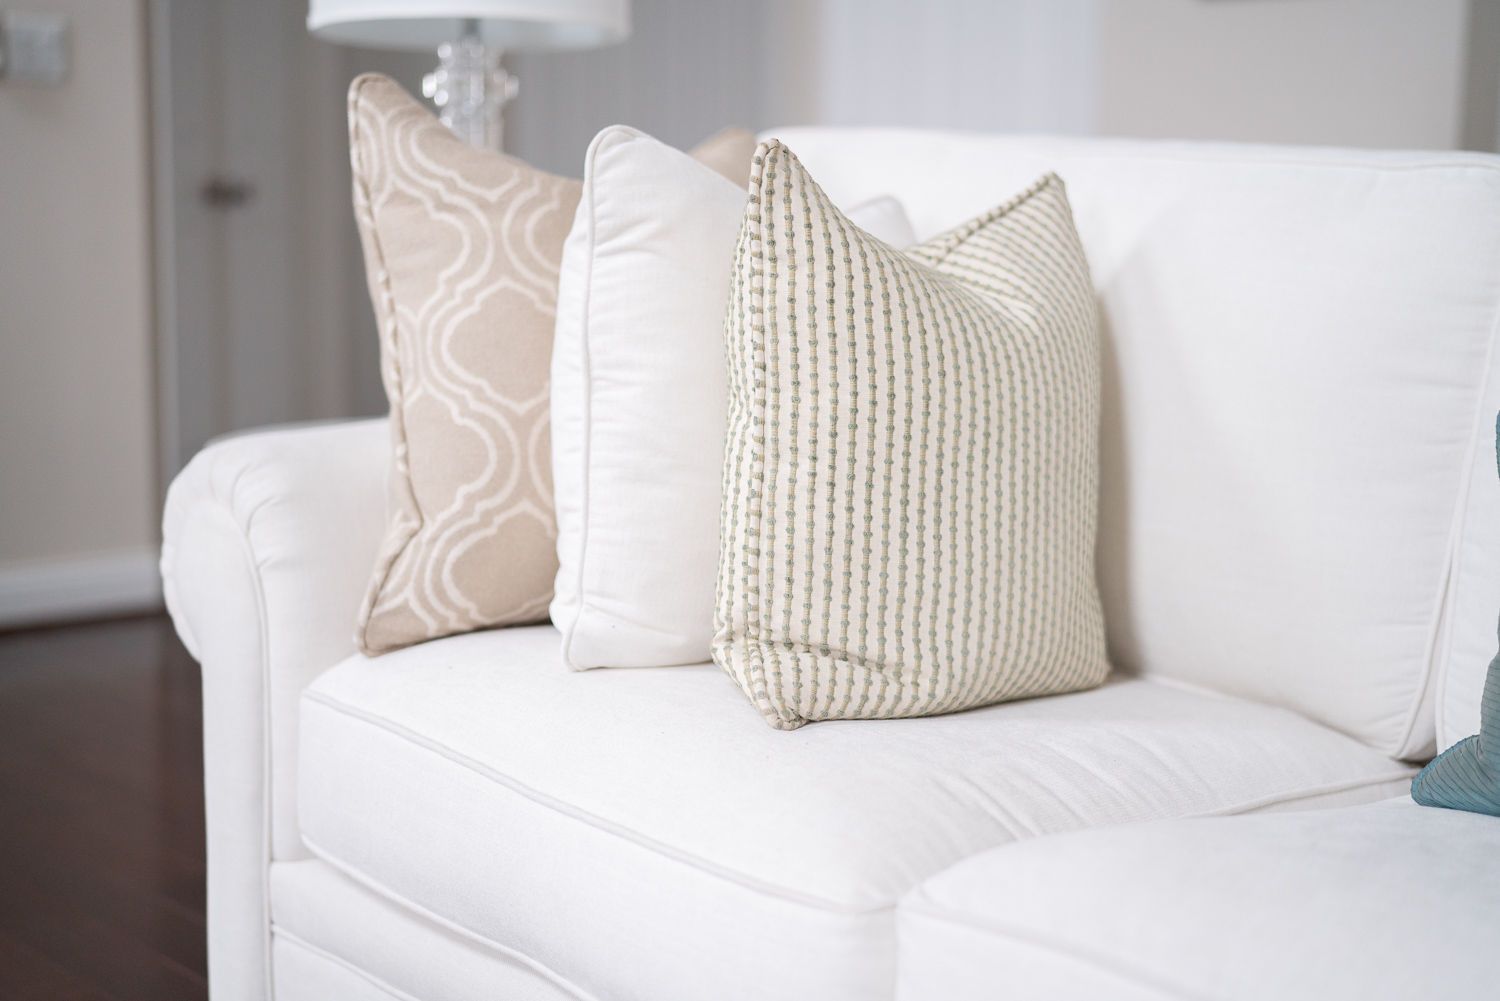 Neutral-themed pillowcases made from decorative rugs on a white sofa